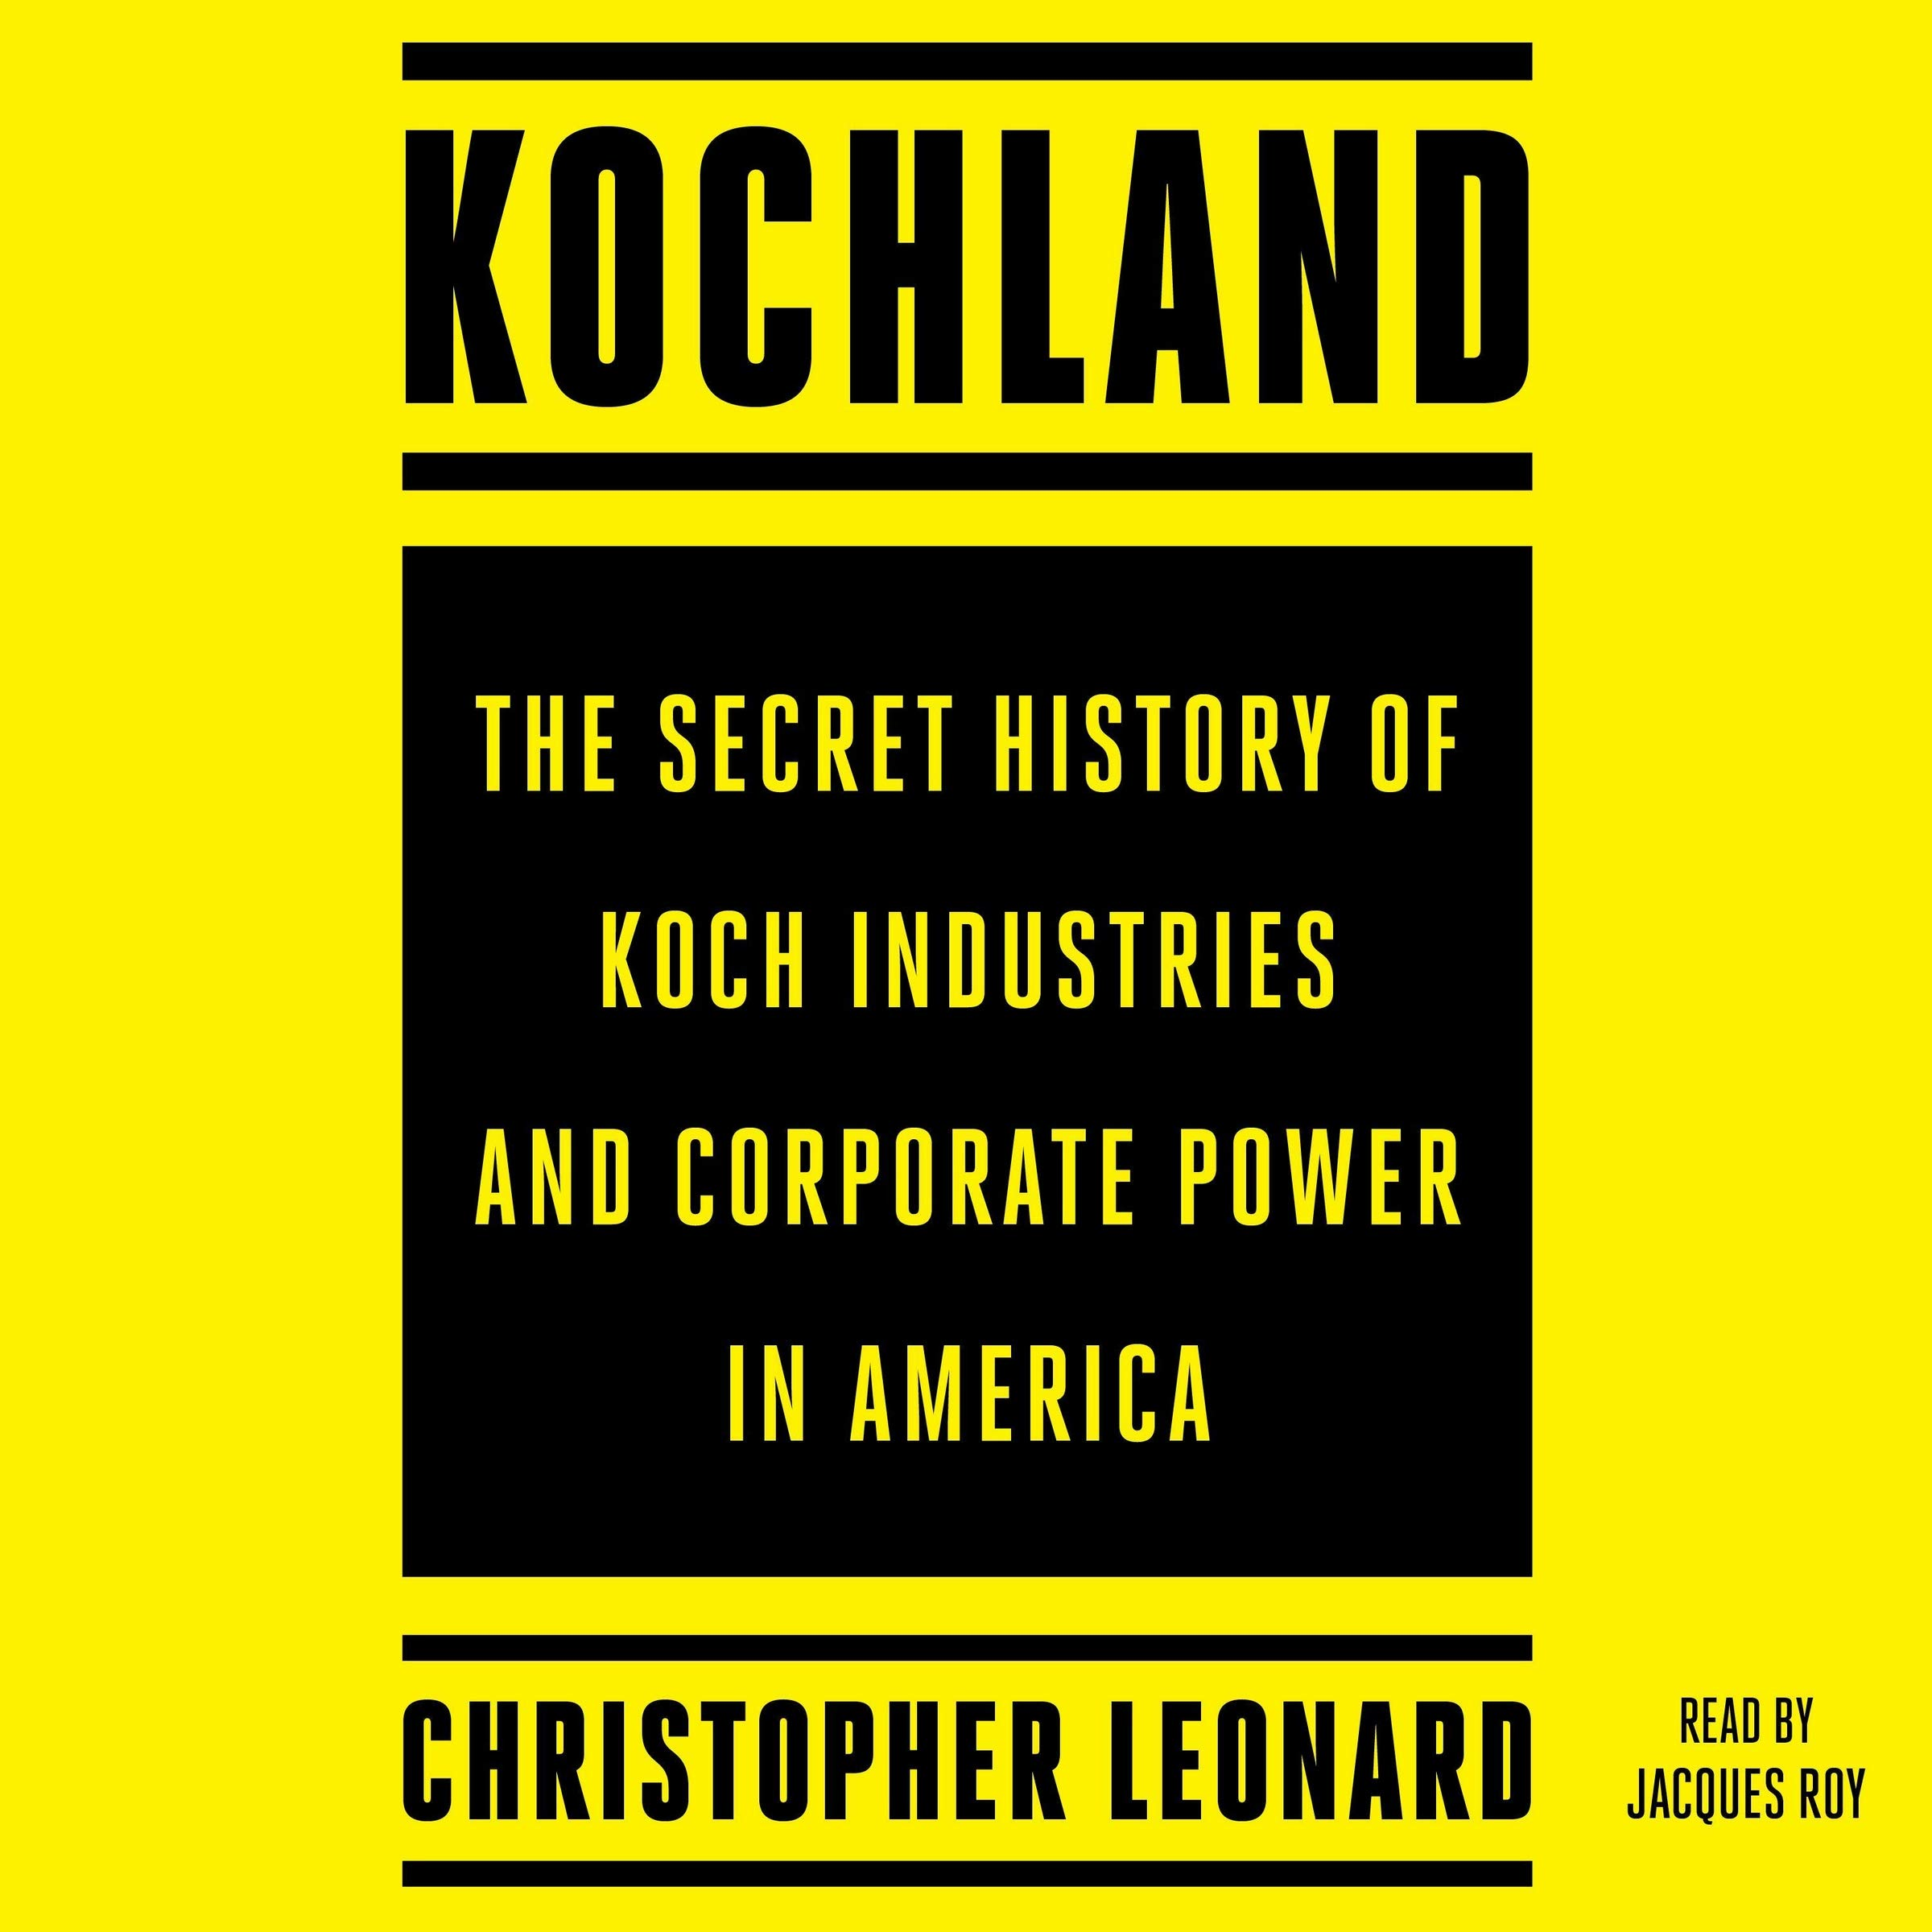 Kochland: The Secret History of Koch Industries and